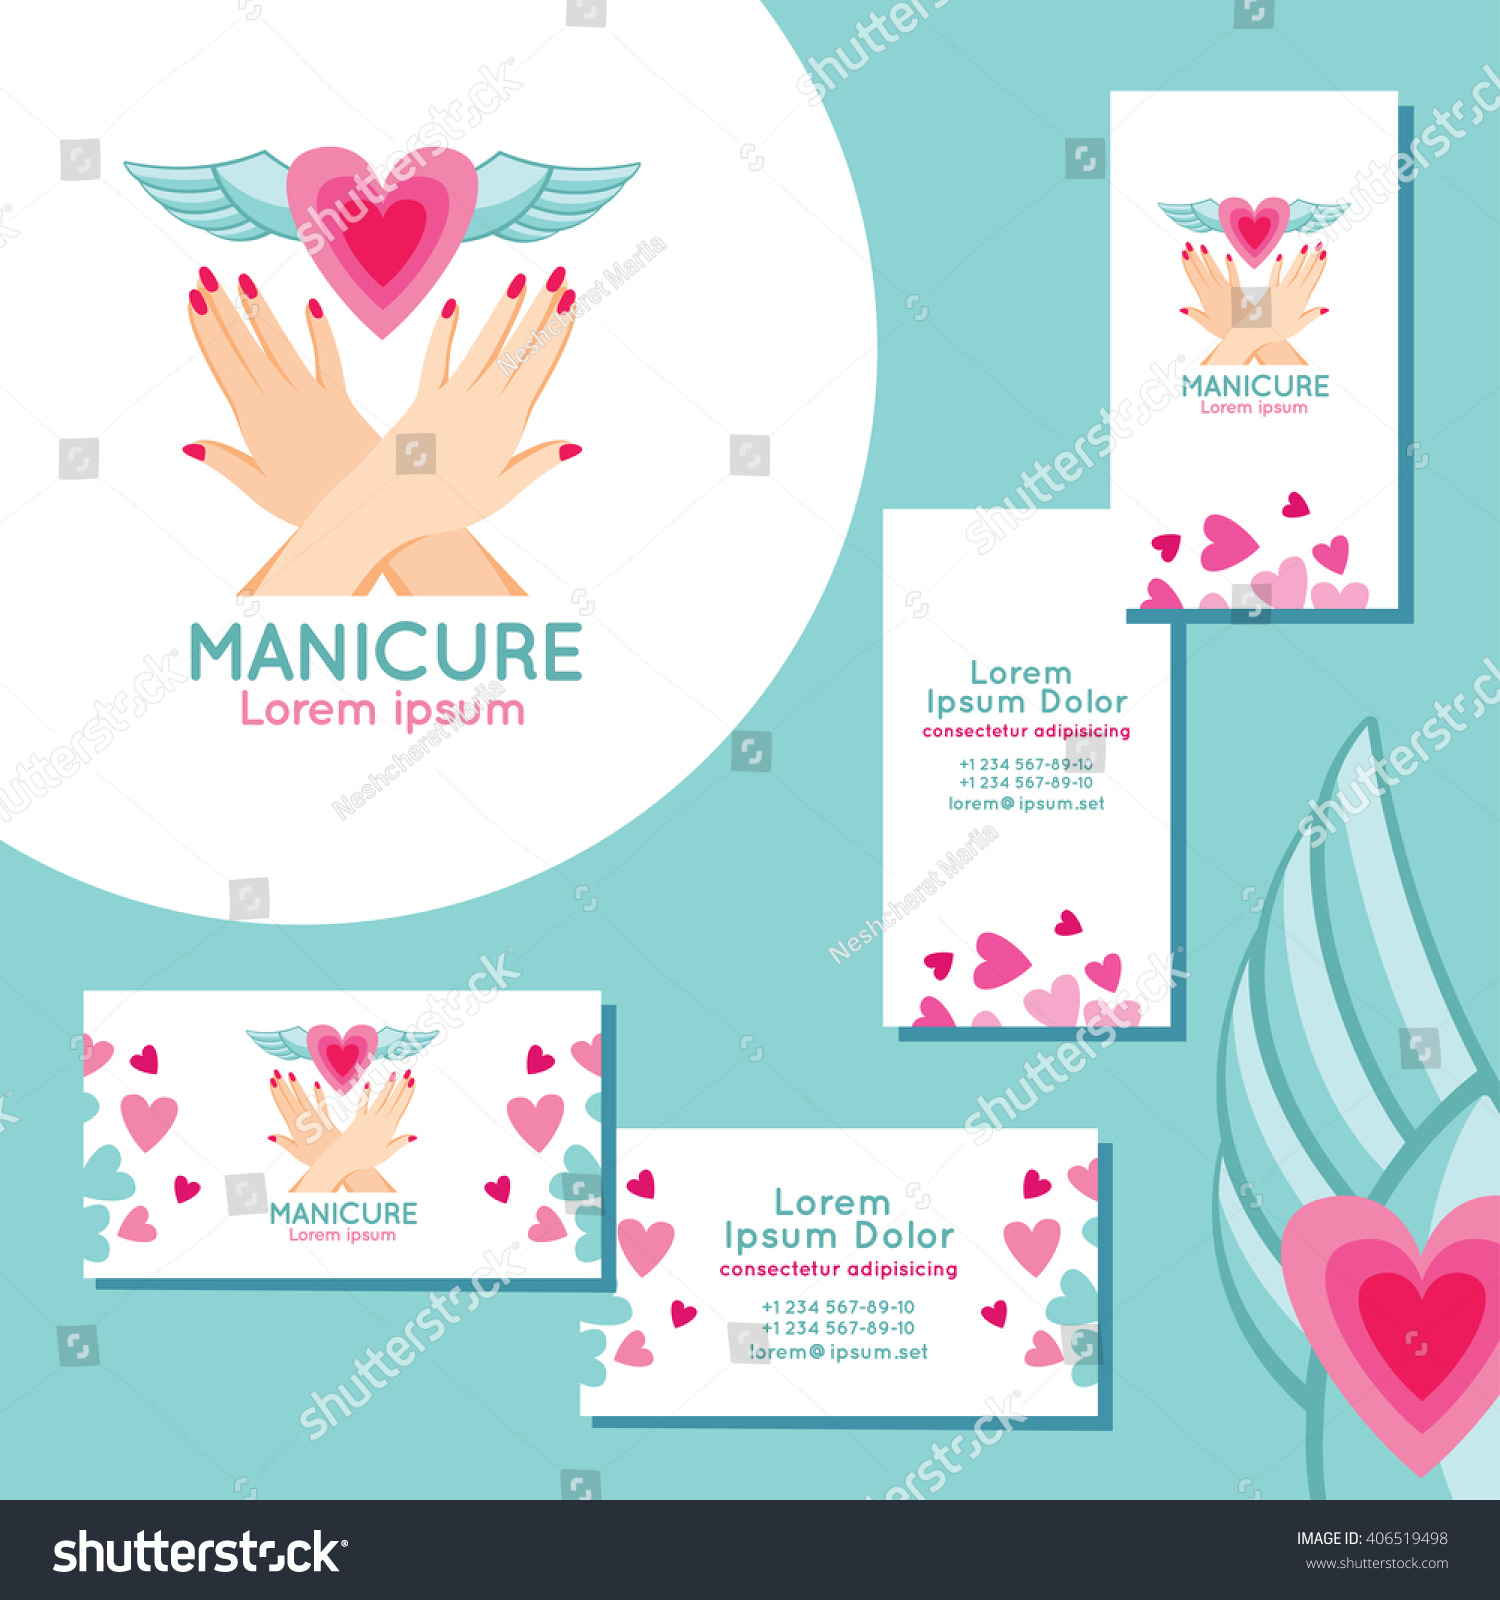 Manicure Logo Set Business Cards Manicure Stock Vector 406519498 ...